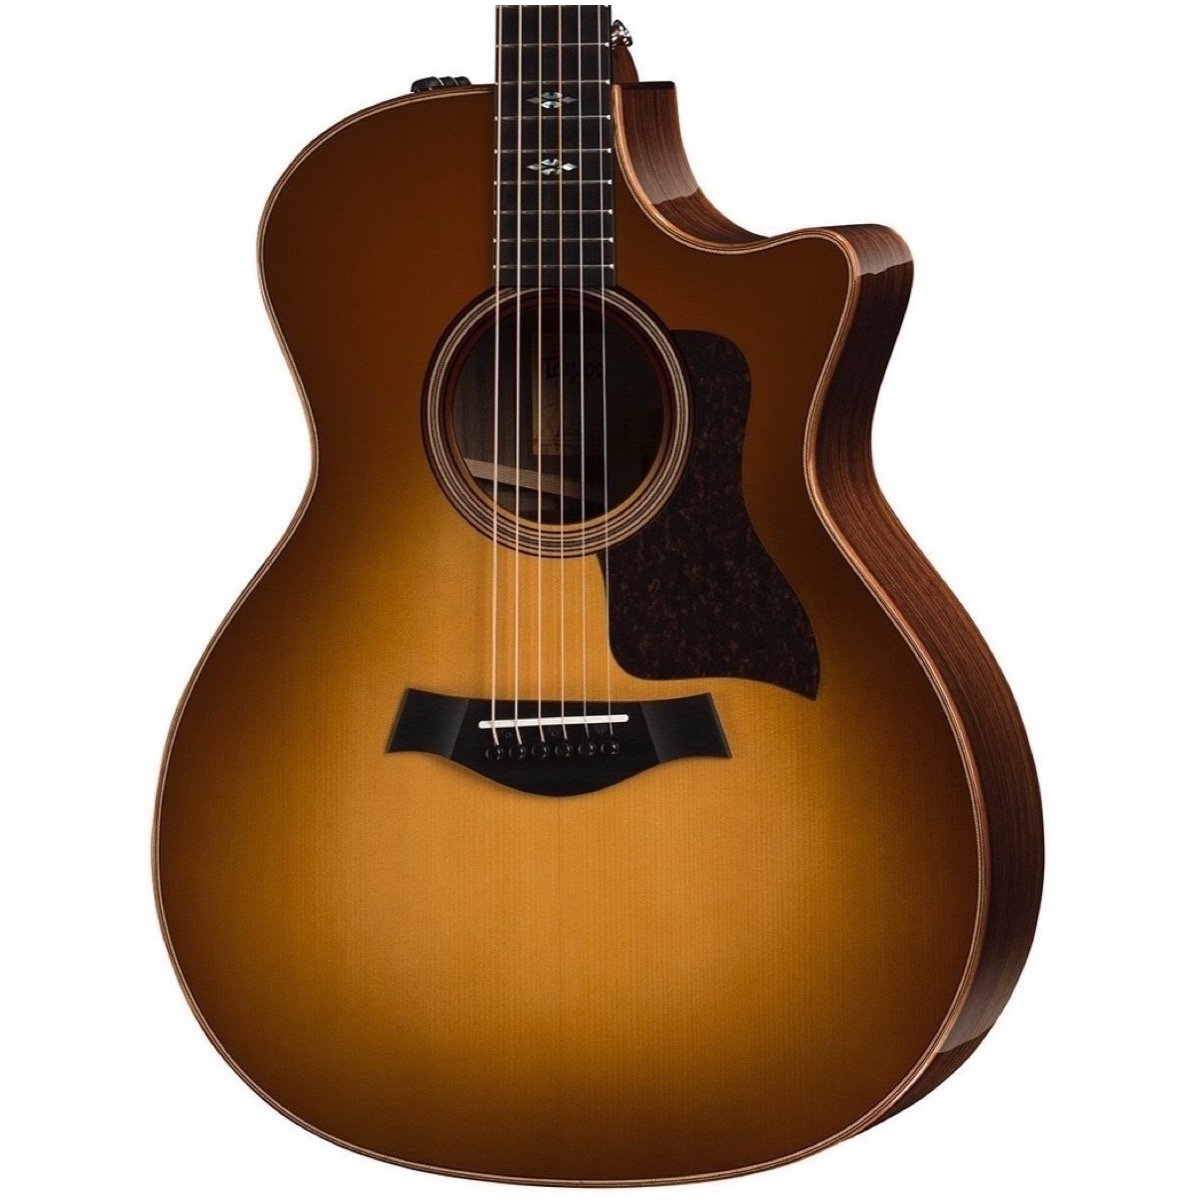 Taylor 714ce V-Class Acoustic-Electric Guitar (with Case), Western Sunburst